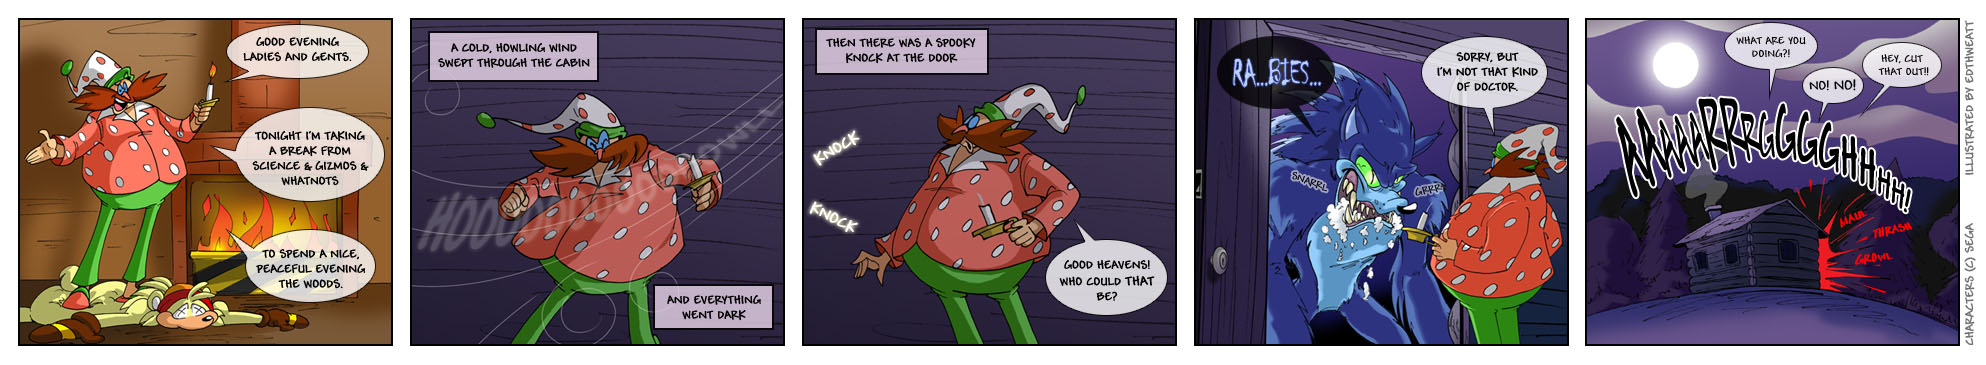 037: The Scariest Thing part 5 by thweatted